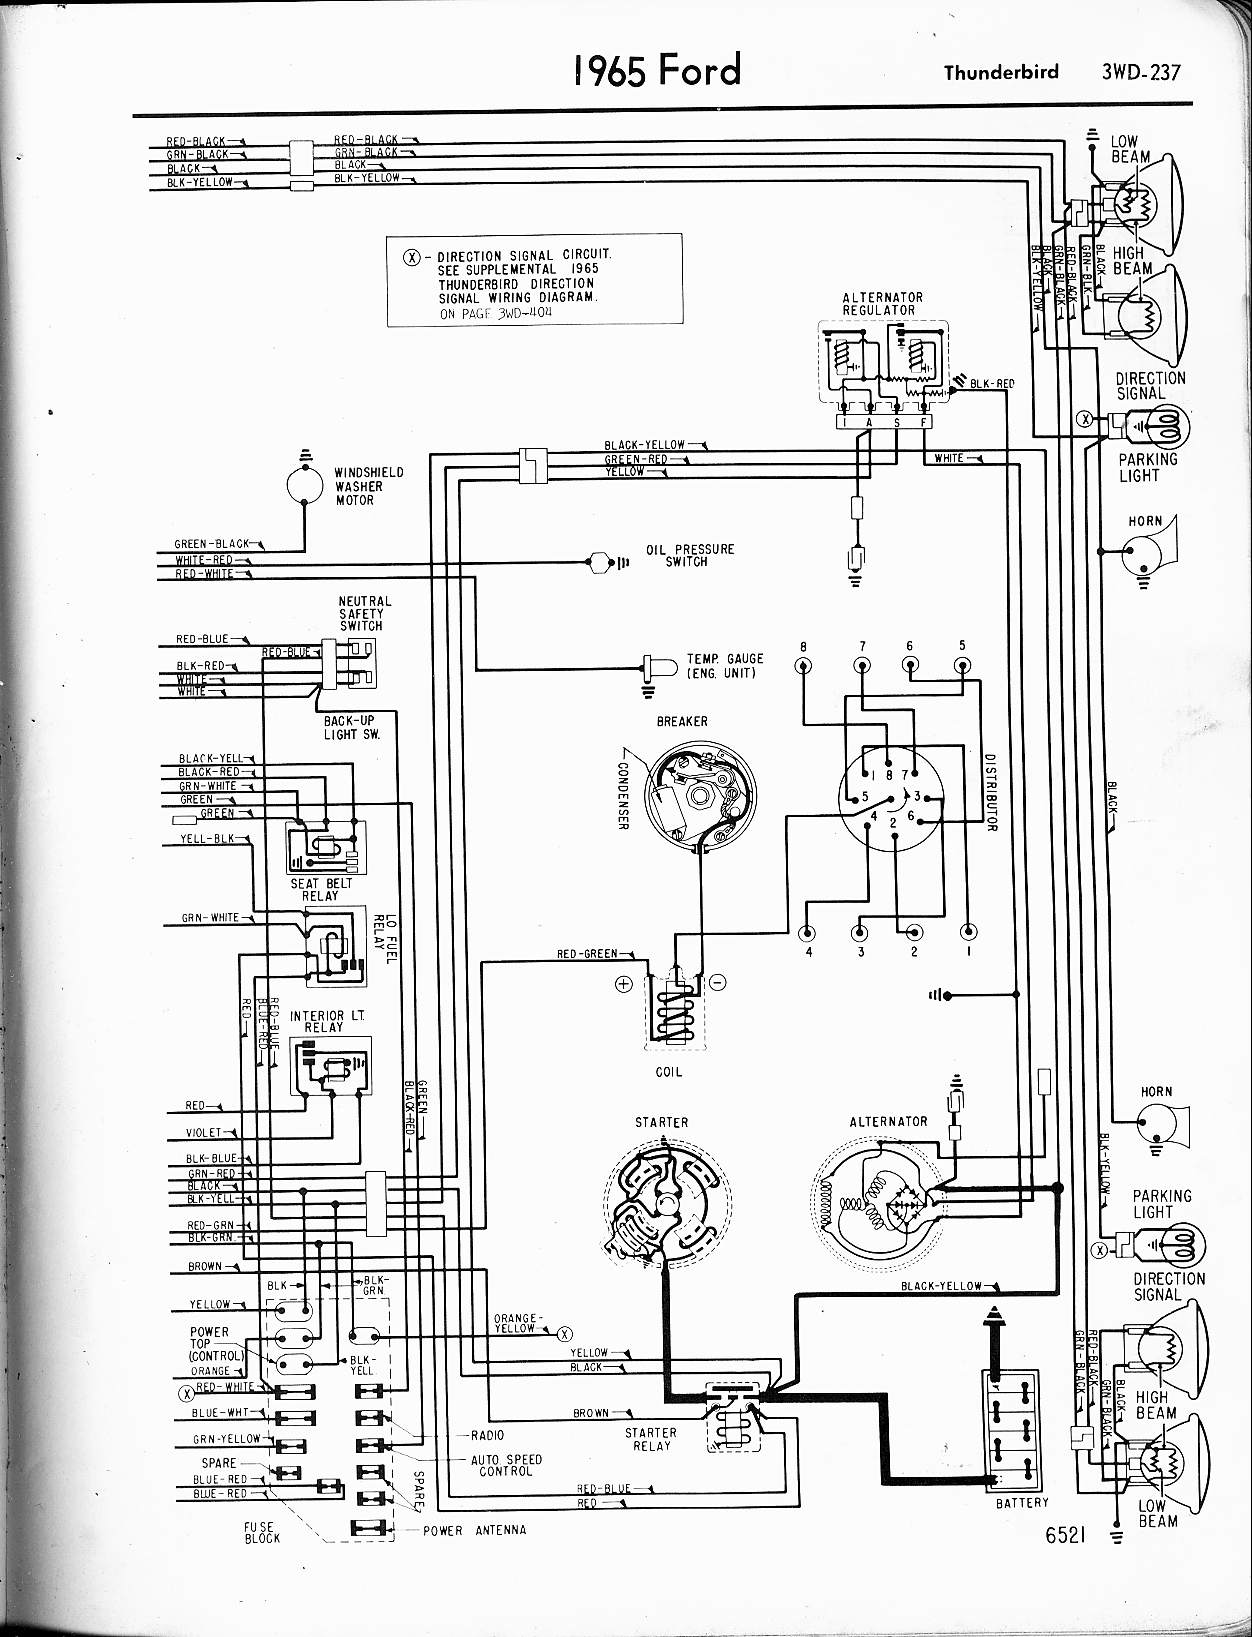 MWire5765 237 1965 f 100 alt gauge 70 amp circuit breaker ford truck 1966 ford truck wiring diagram at n-0.co